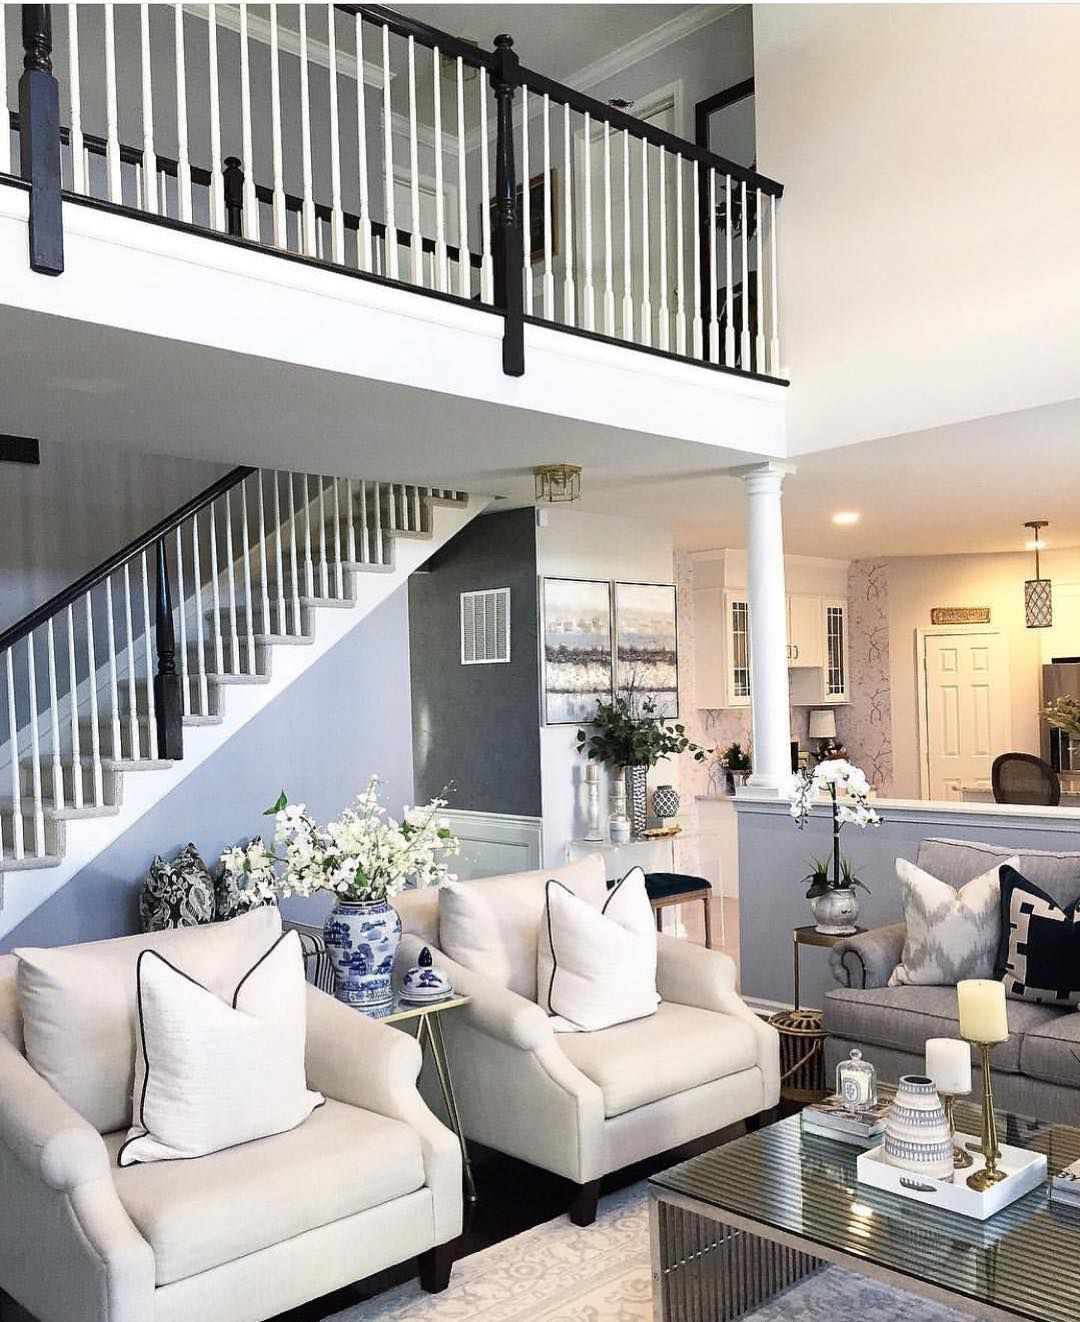 9 Stunning Ways To Use A Brown Sofa Living Room Colors Living Room Color Paint Colors For Living Room